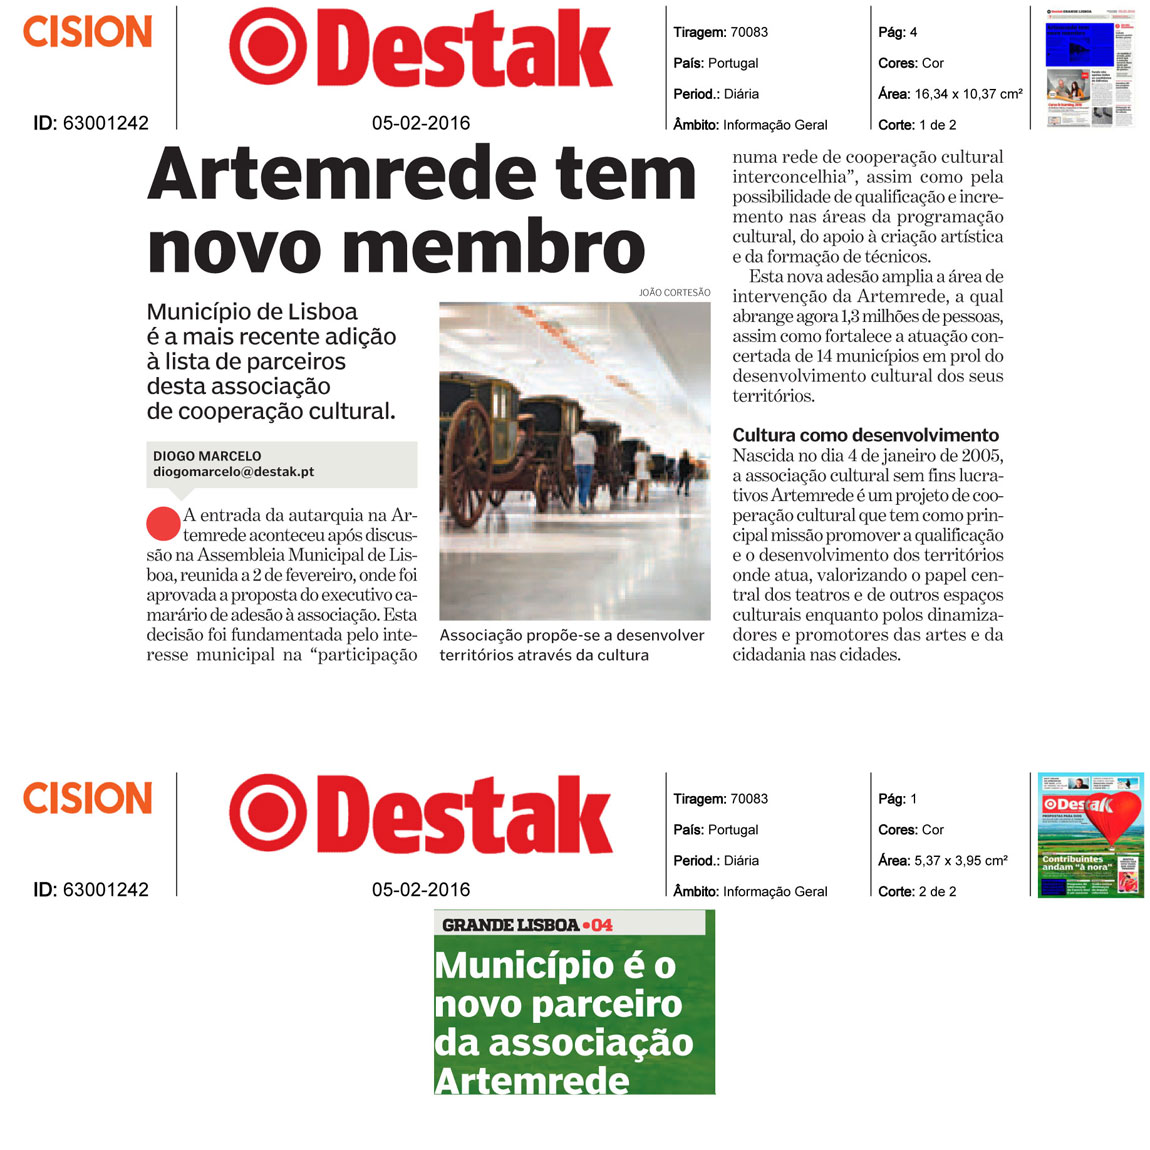 in Destak .: Nova Adesão do Municipio de Lisboa